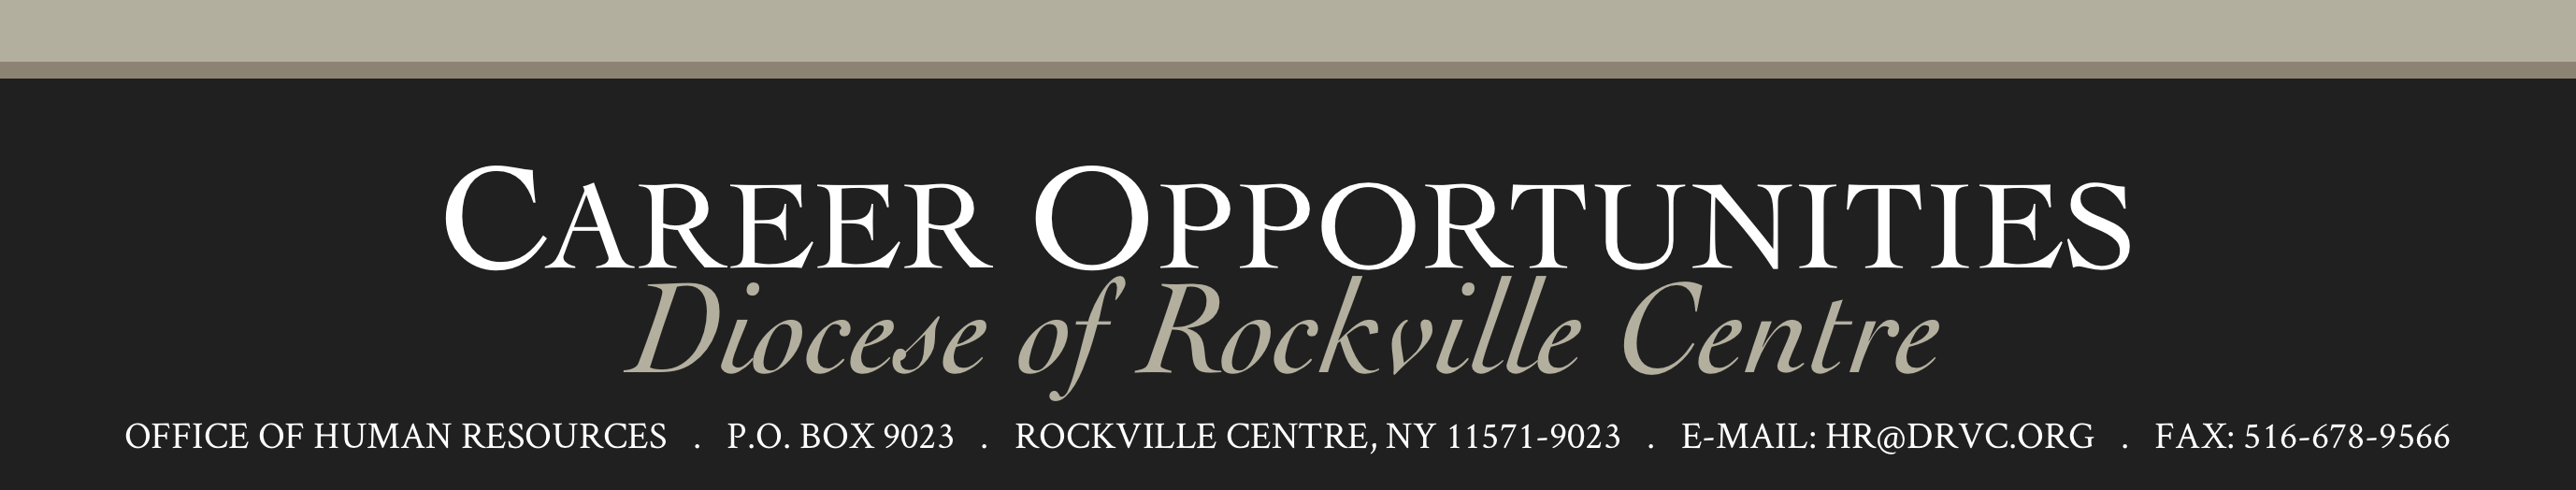 Career Opportunities | The Diocese of Rockville Centre